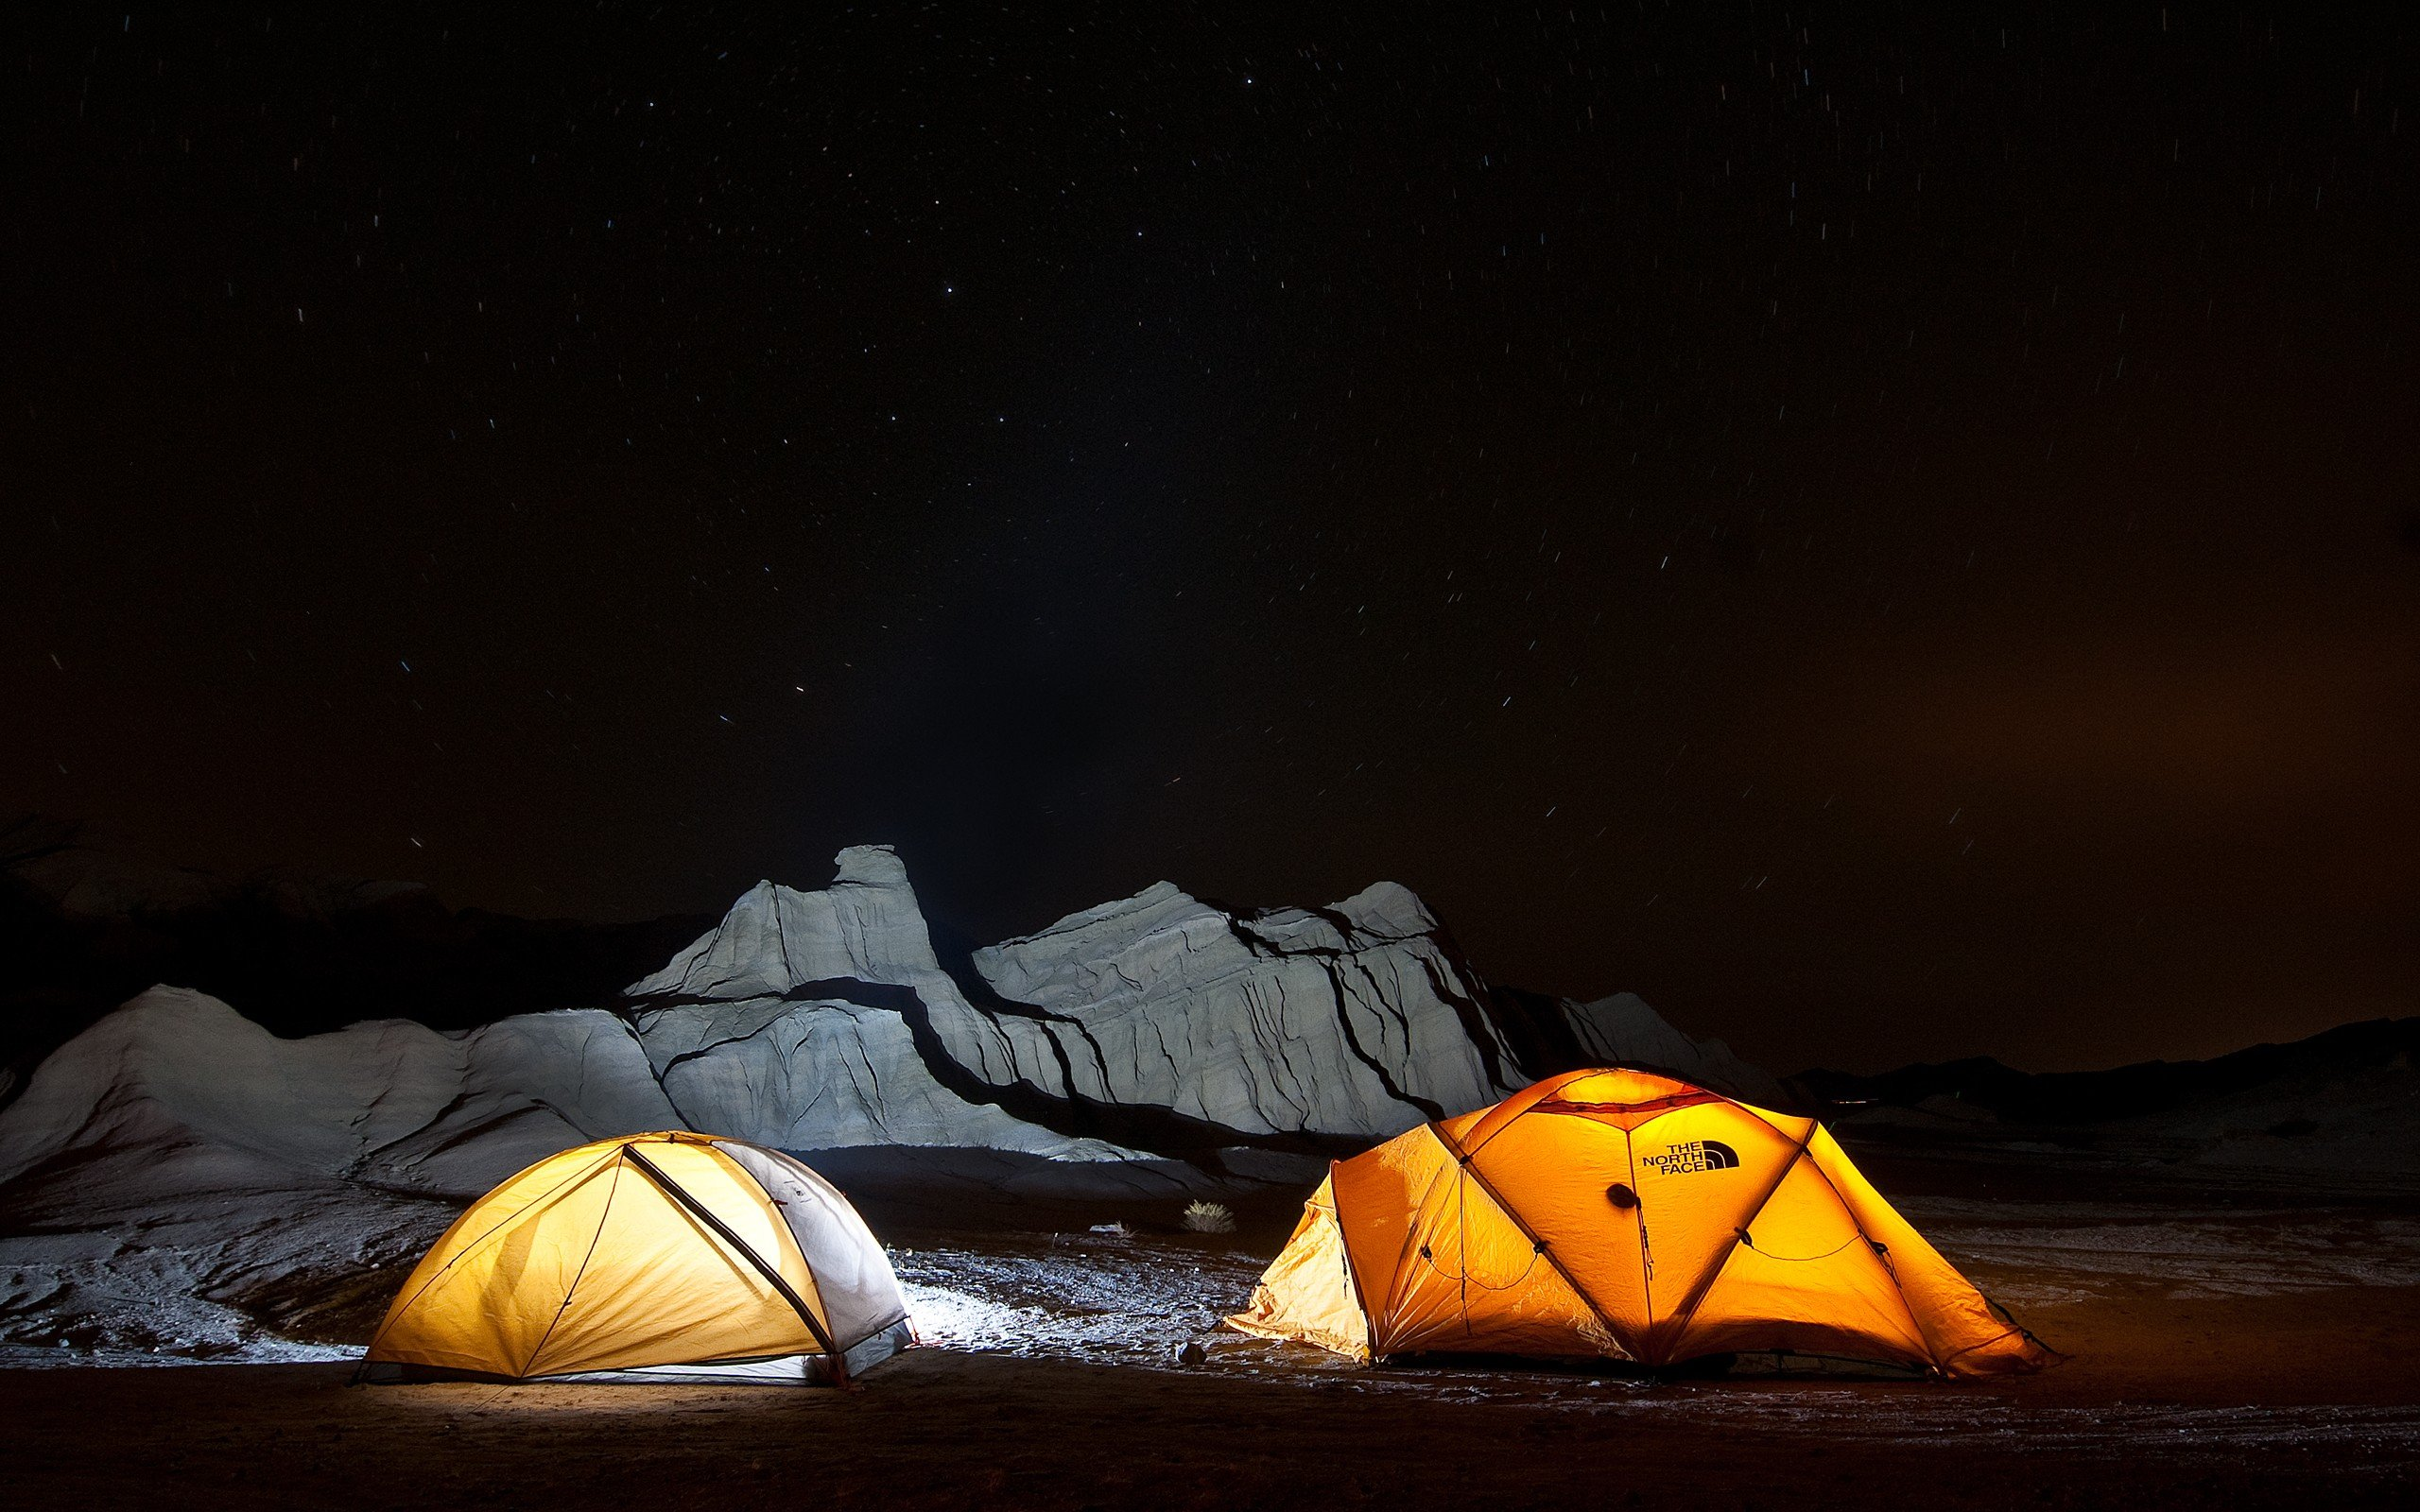 Mountain Camping Wallpapers Mountain Camping Hd Backgrounds High 2560x1600